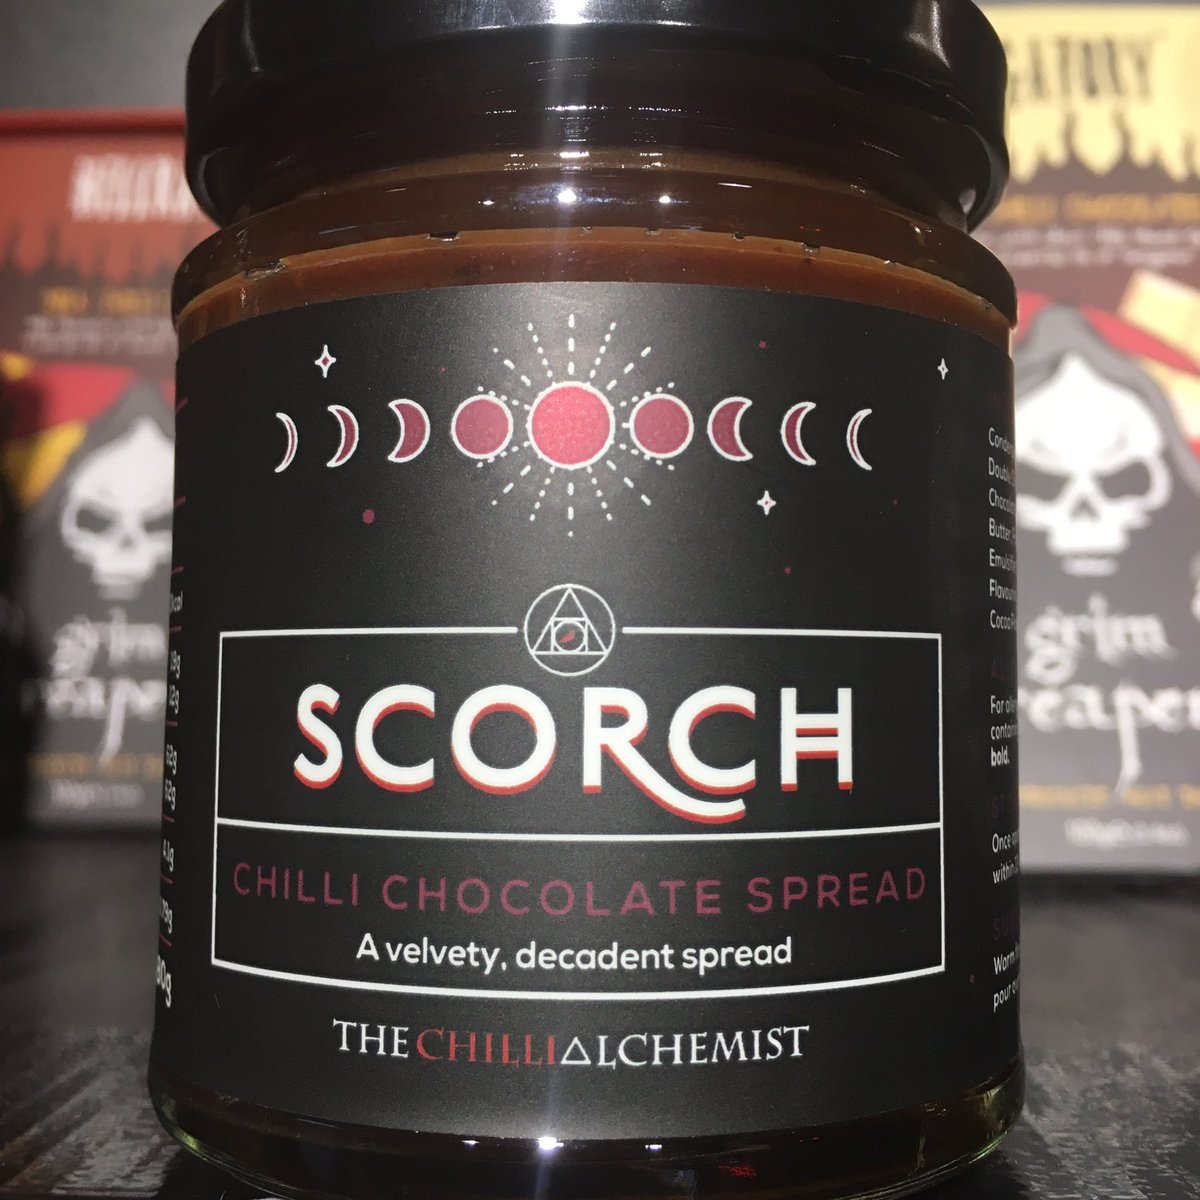 Spread the word.... CHILLI CHOCOLATE In a jar! A velvety decadent chocolate spread 🔥2/10 mmmm £5 #chocolate #deserts #nutella #chilli #foodie #valentinesgift #yummy